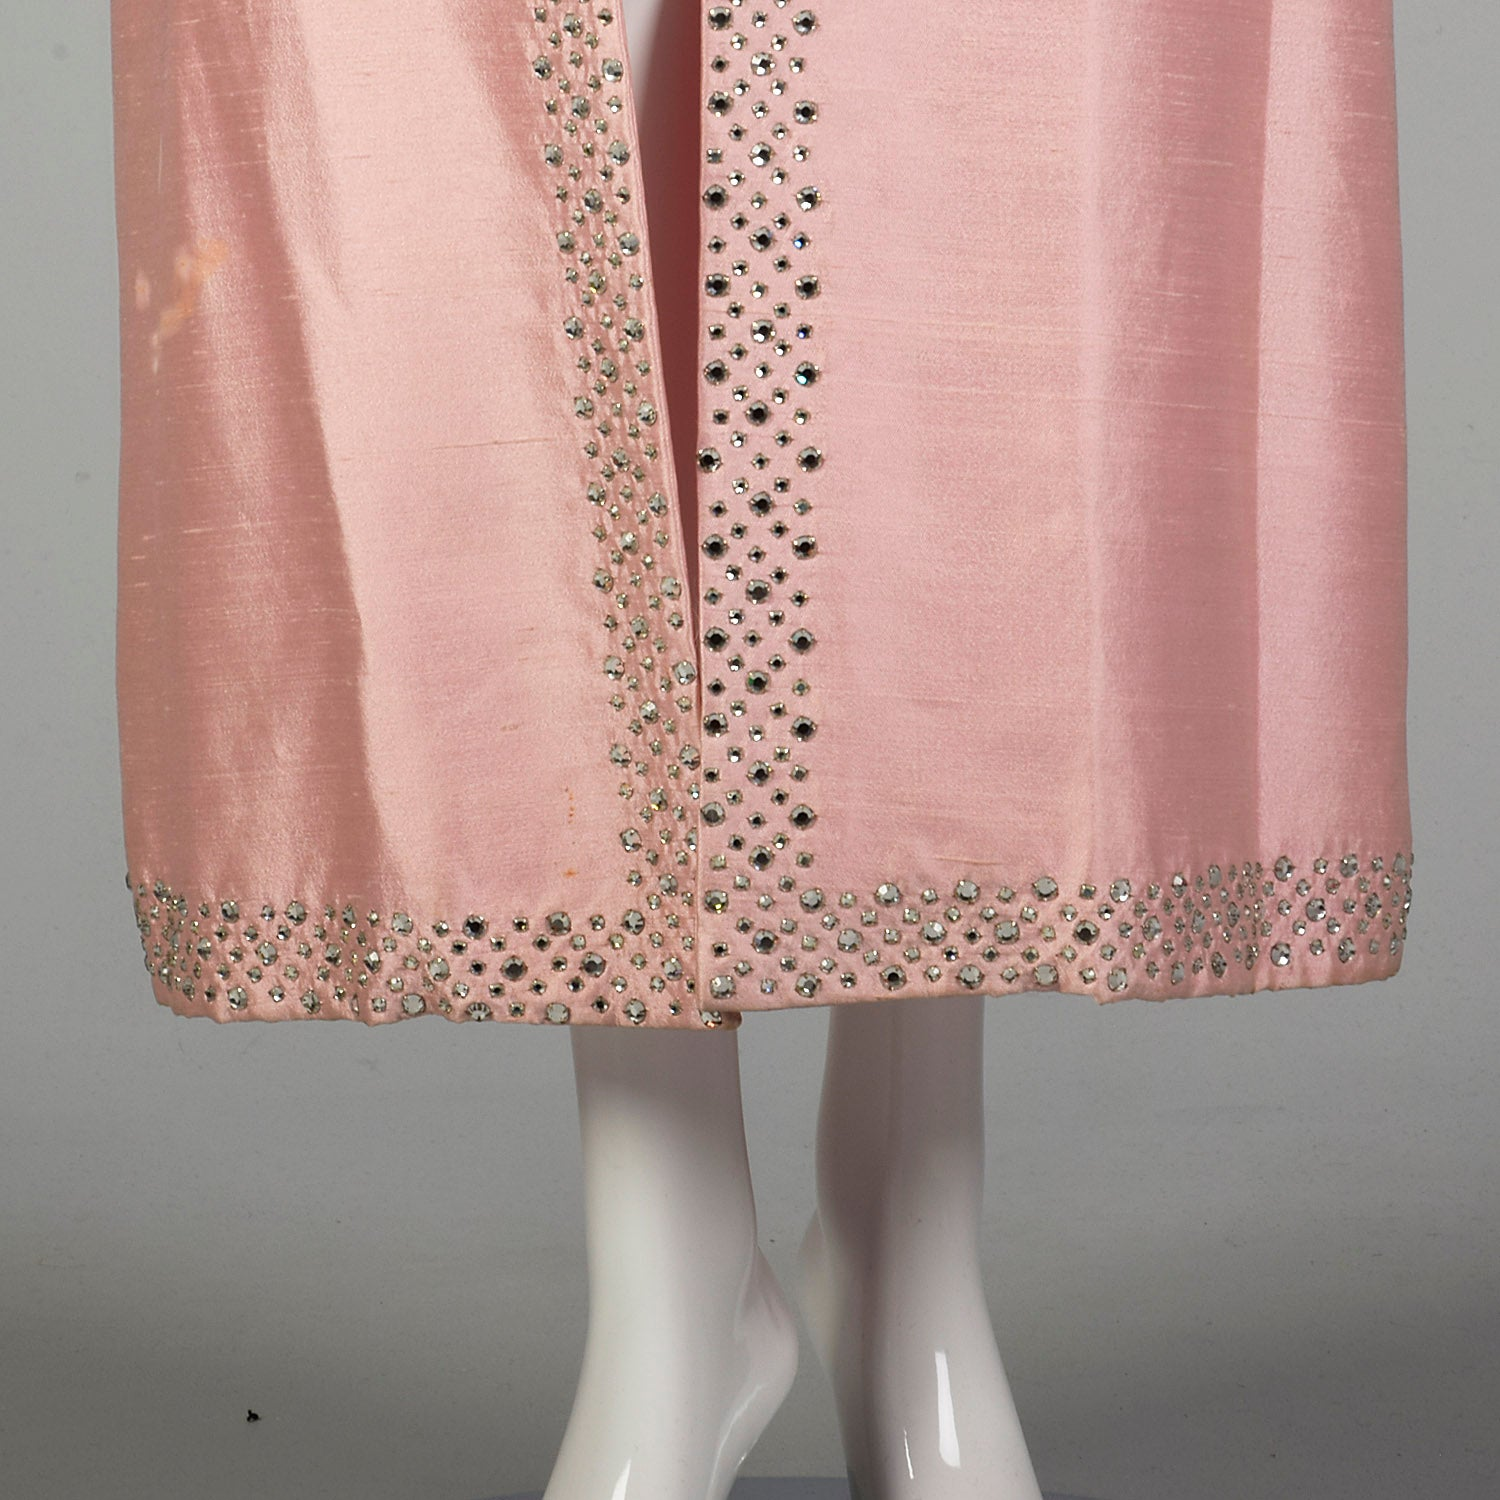 Medium 1960s Full Length Formal Pink Opera Coat with Rhinestone Trim